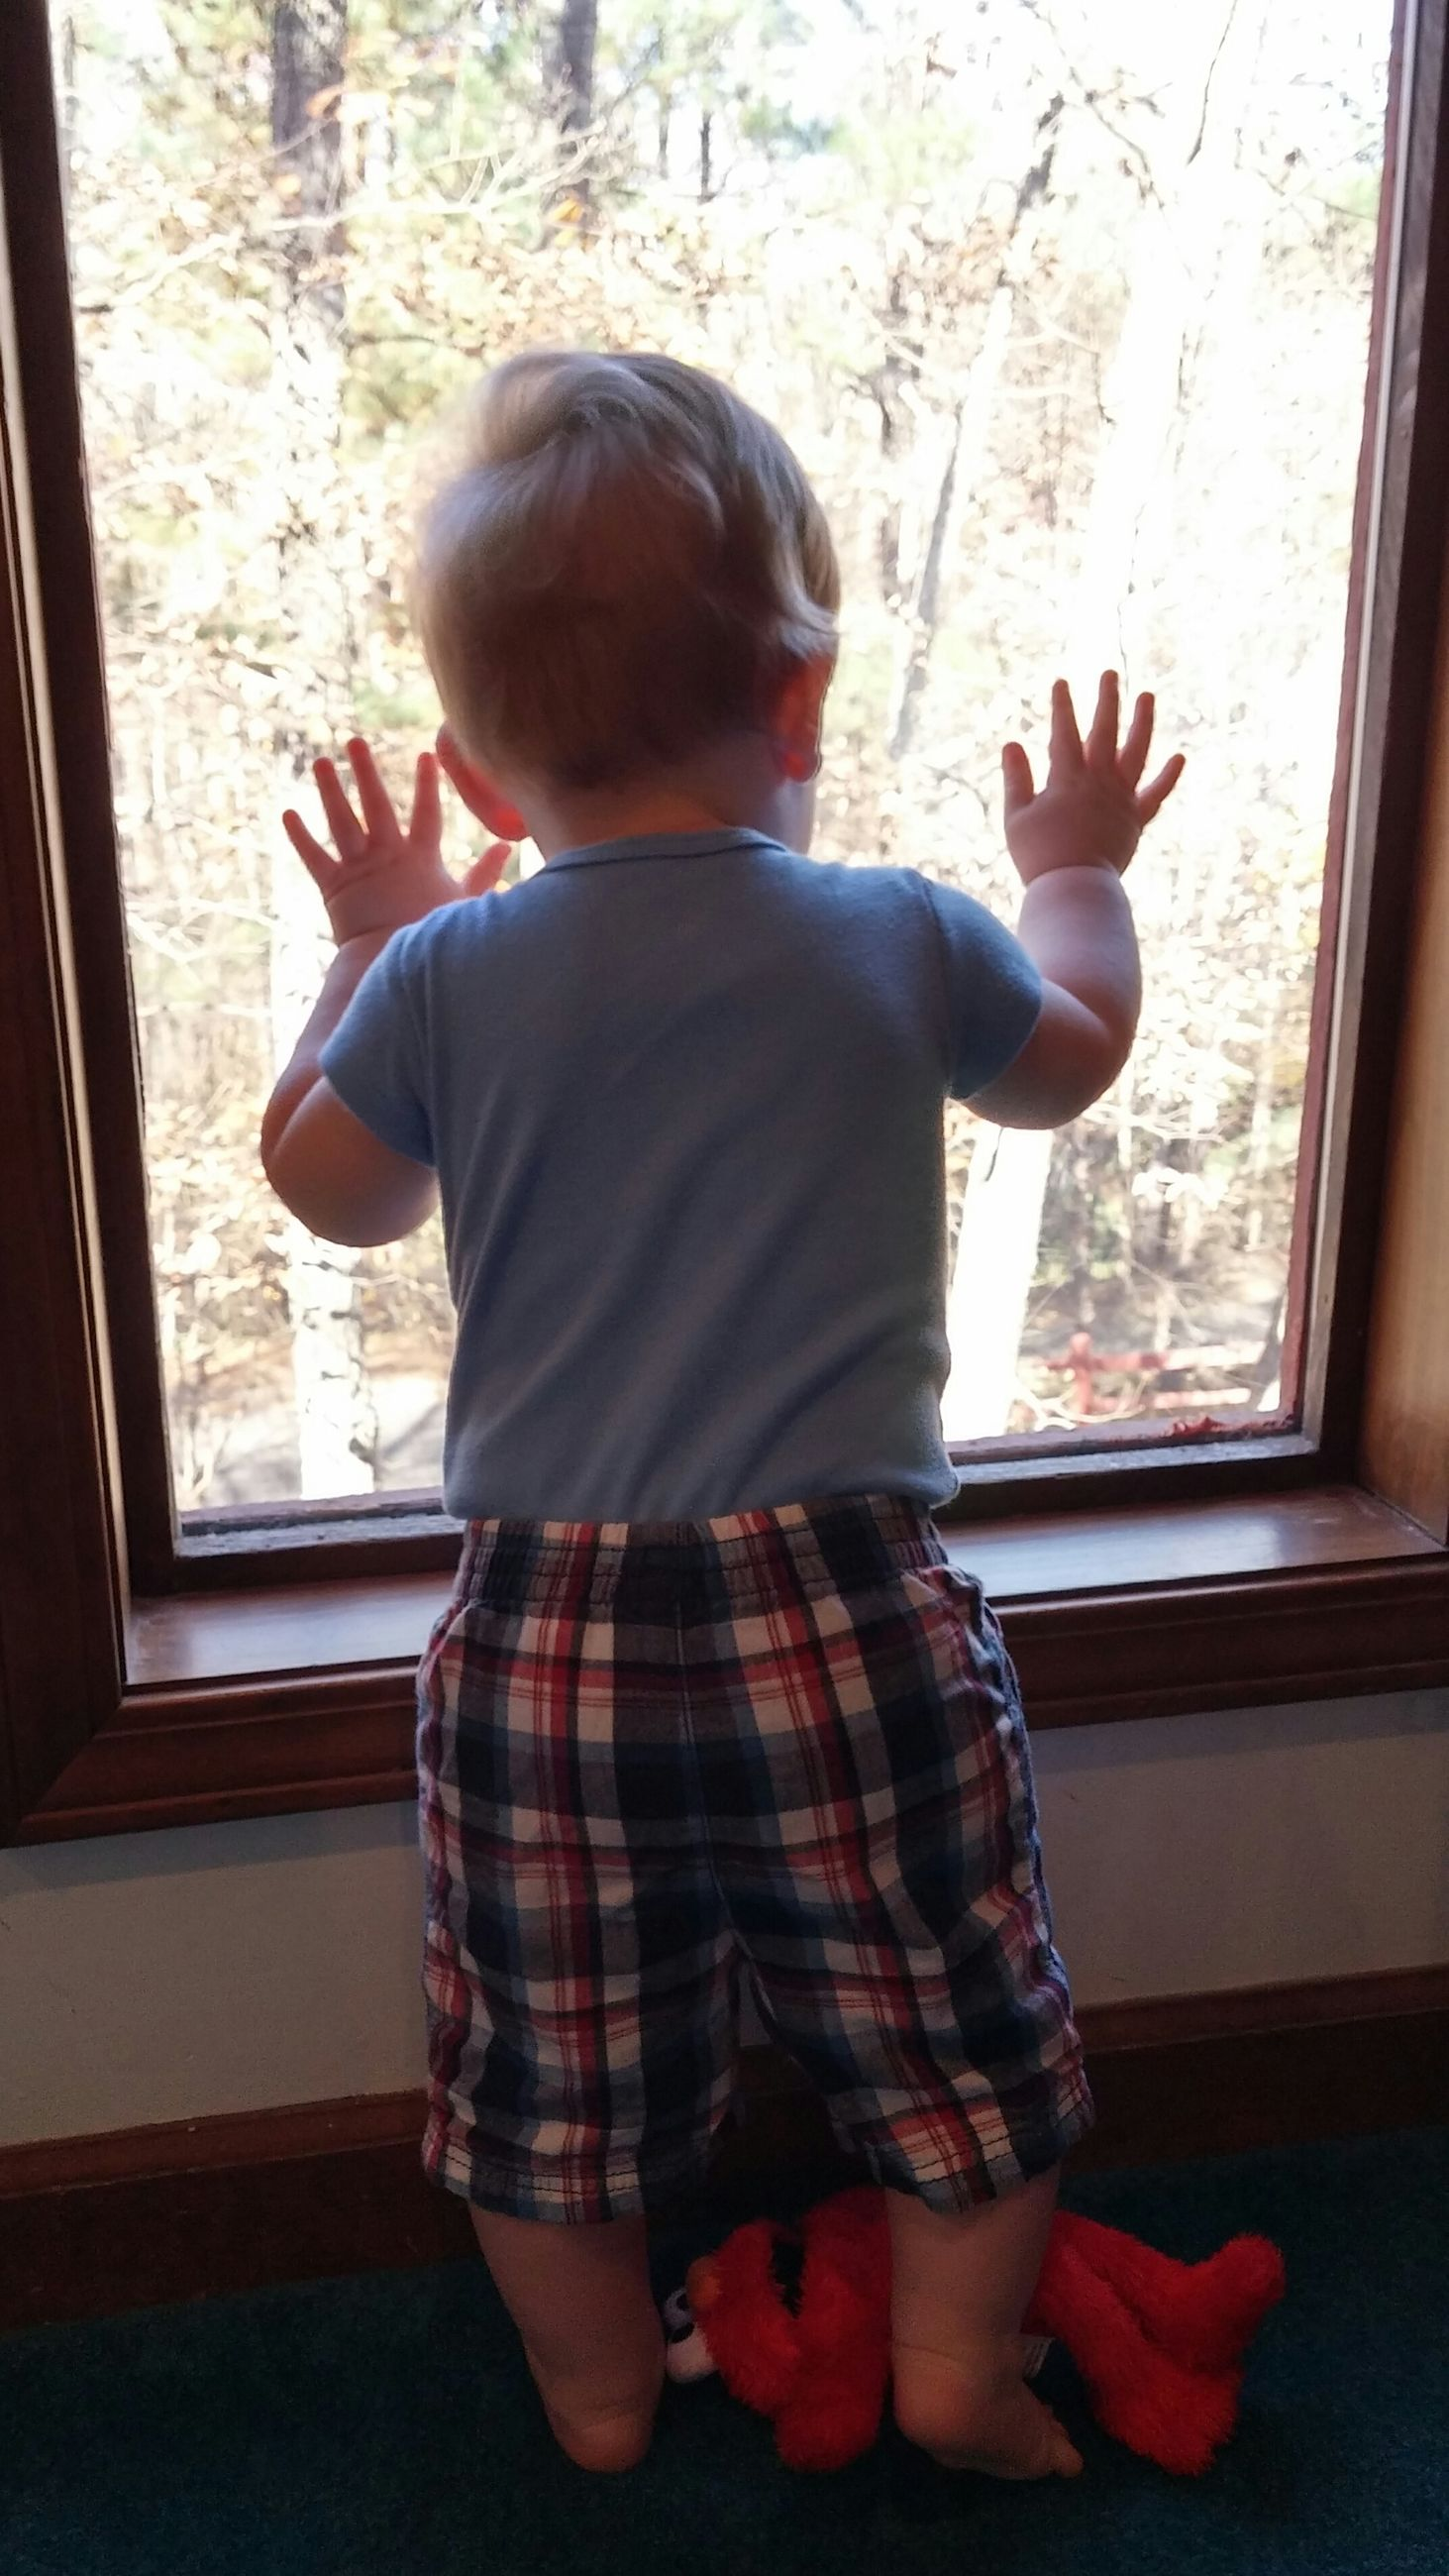 indoors, childhood, lifestyles, casual clothing, leisure activity, home interior, rear view, sitting, full length, standing, boys, elementary age, three quarter length, relaxation, day, window, innocence, sunlight